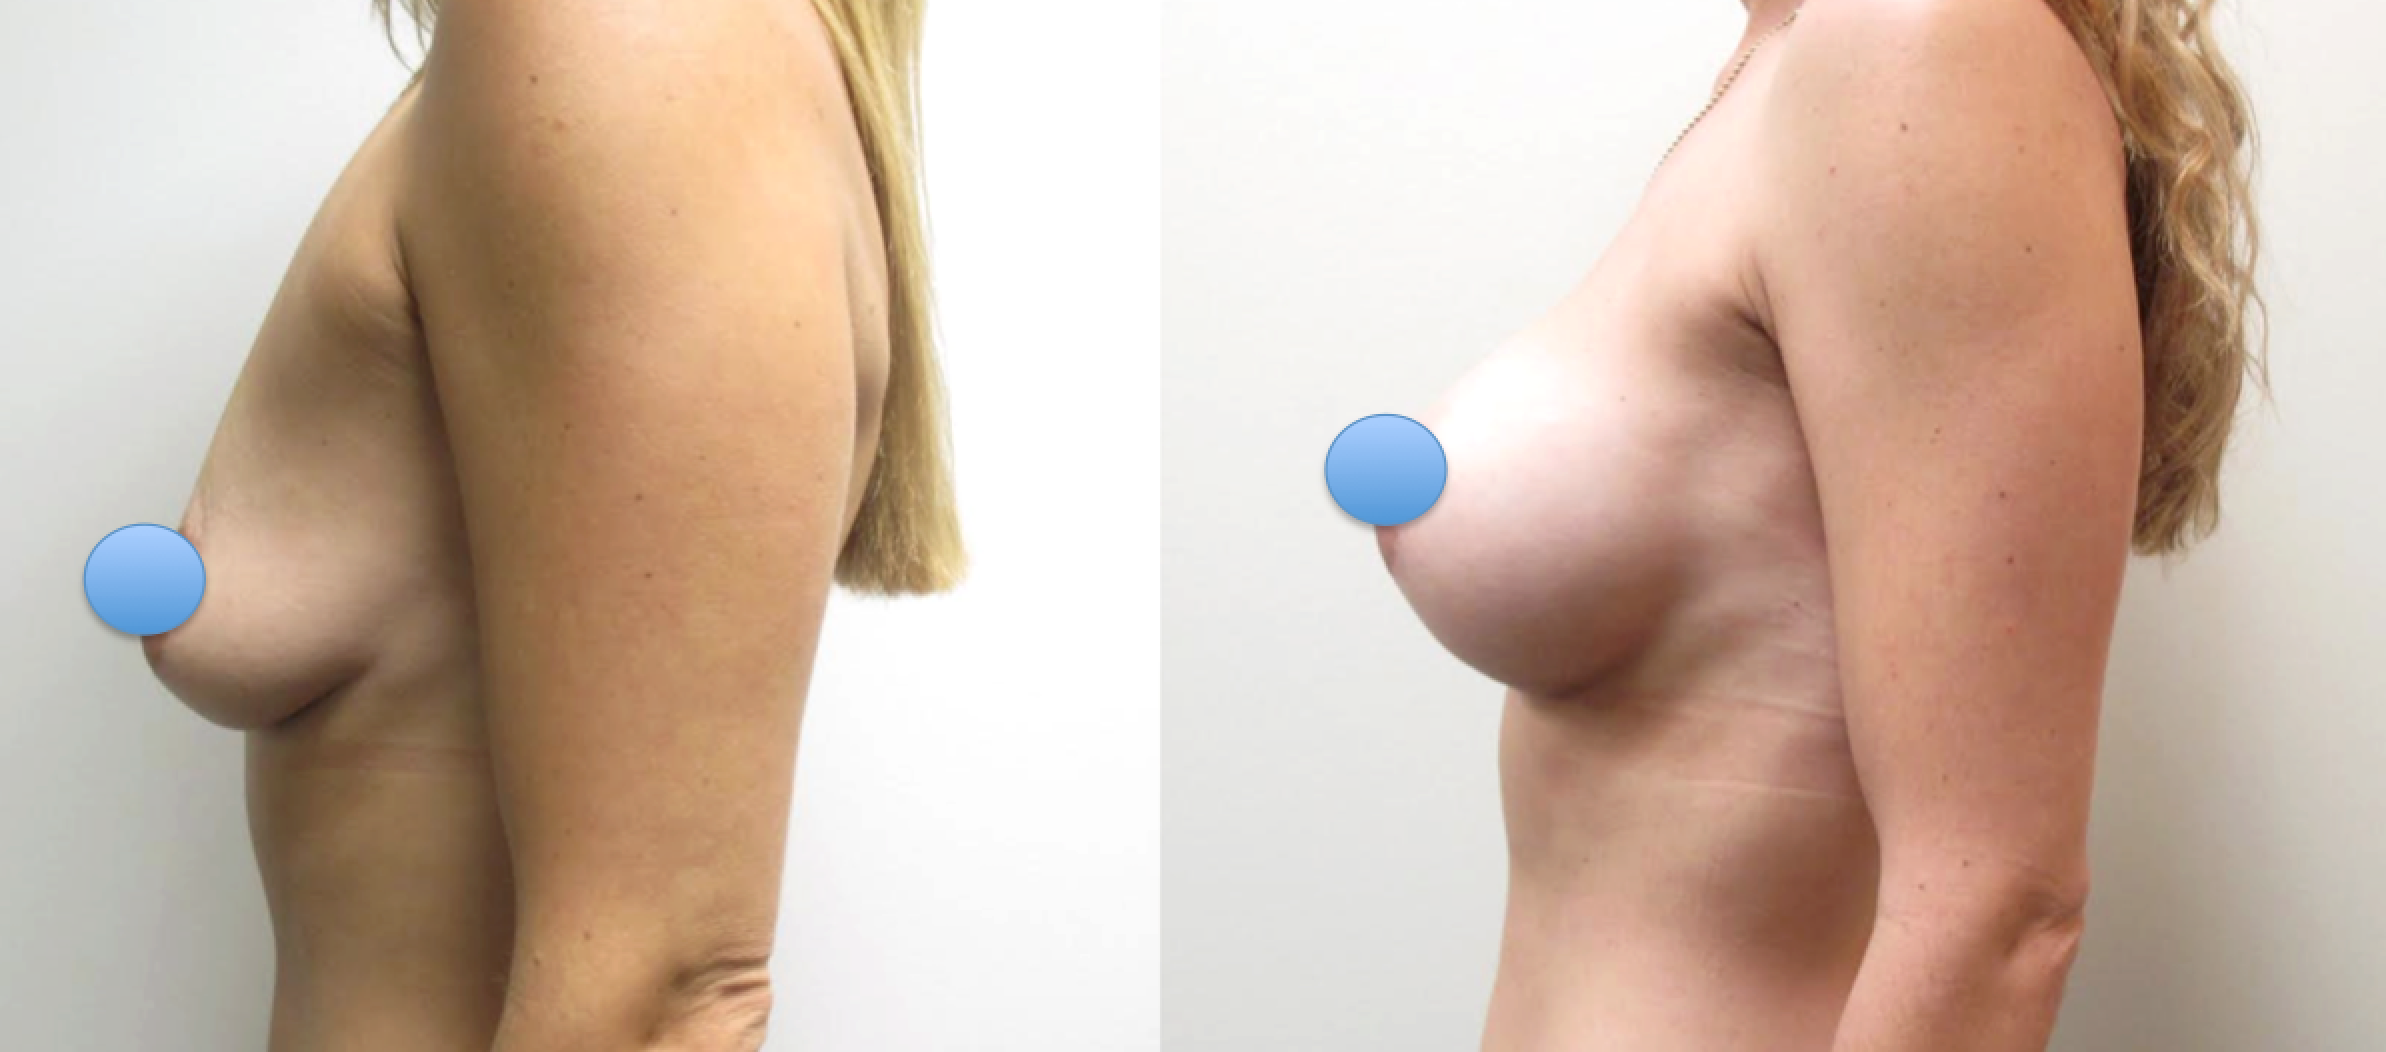 Before & After Photos of Breast Augmentation using the Dual-Plane Technique performed by Dr. Emmanuel De La Cruz.